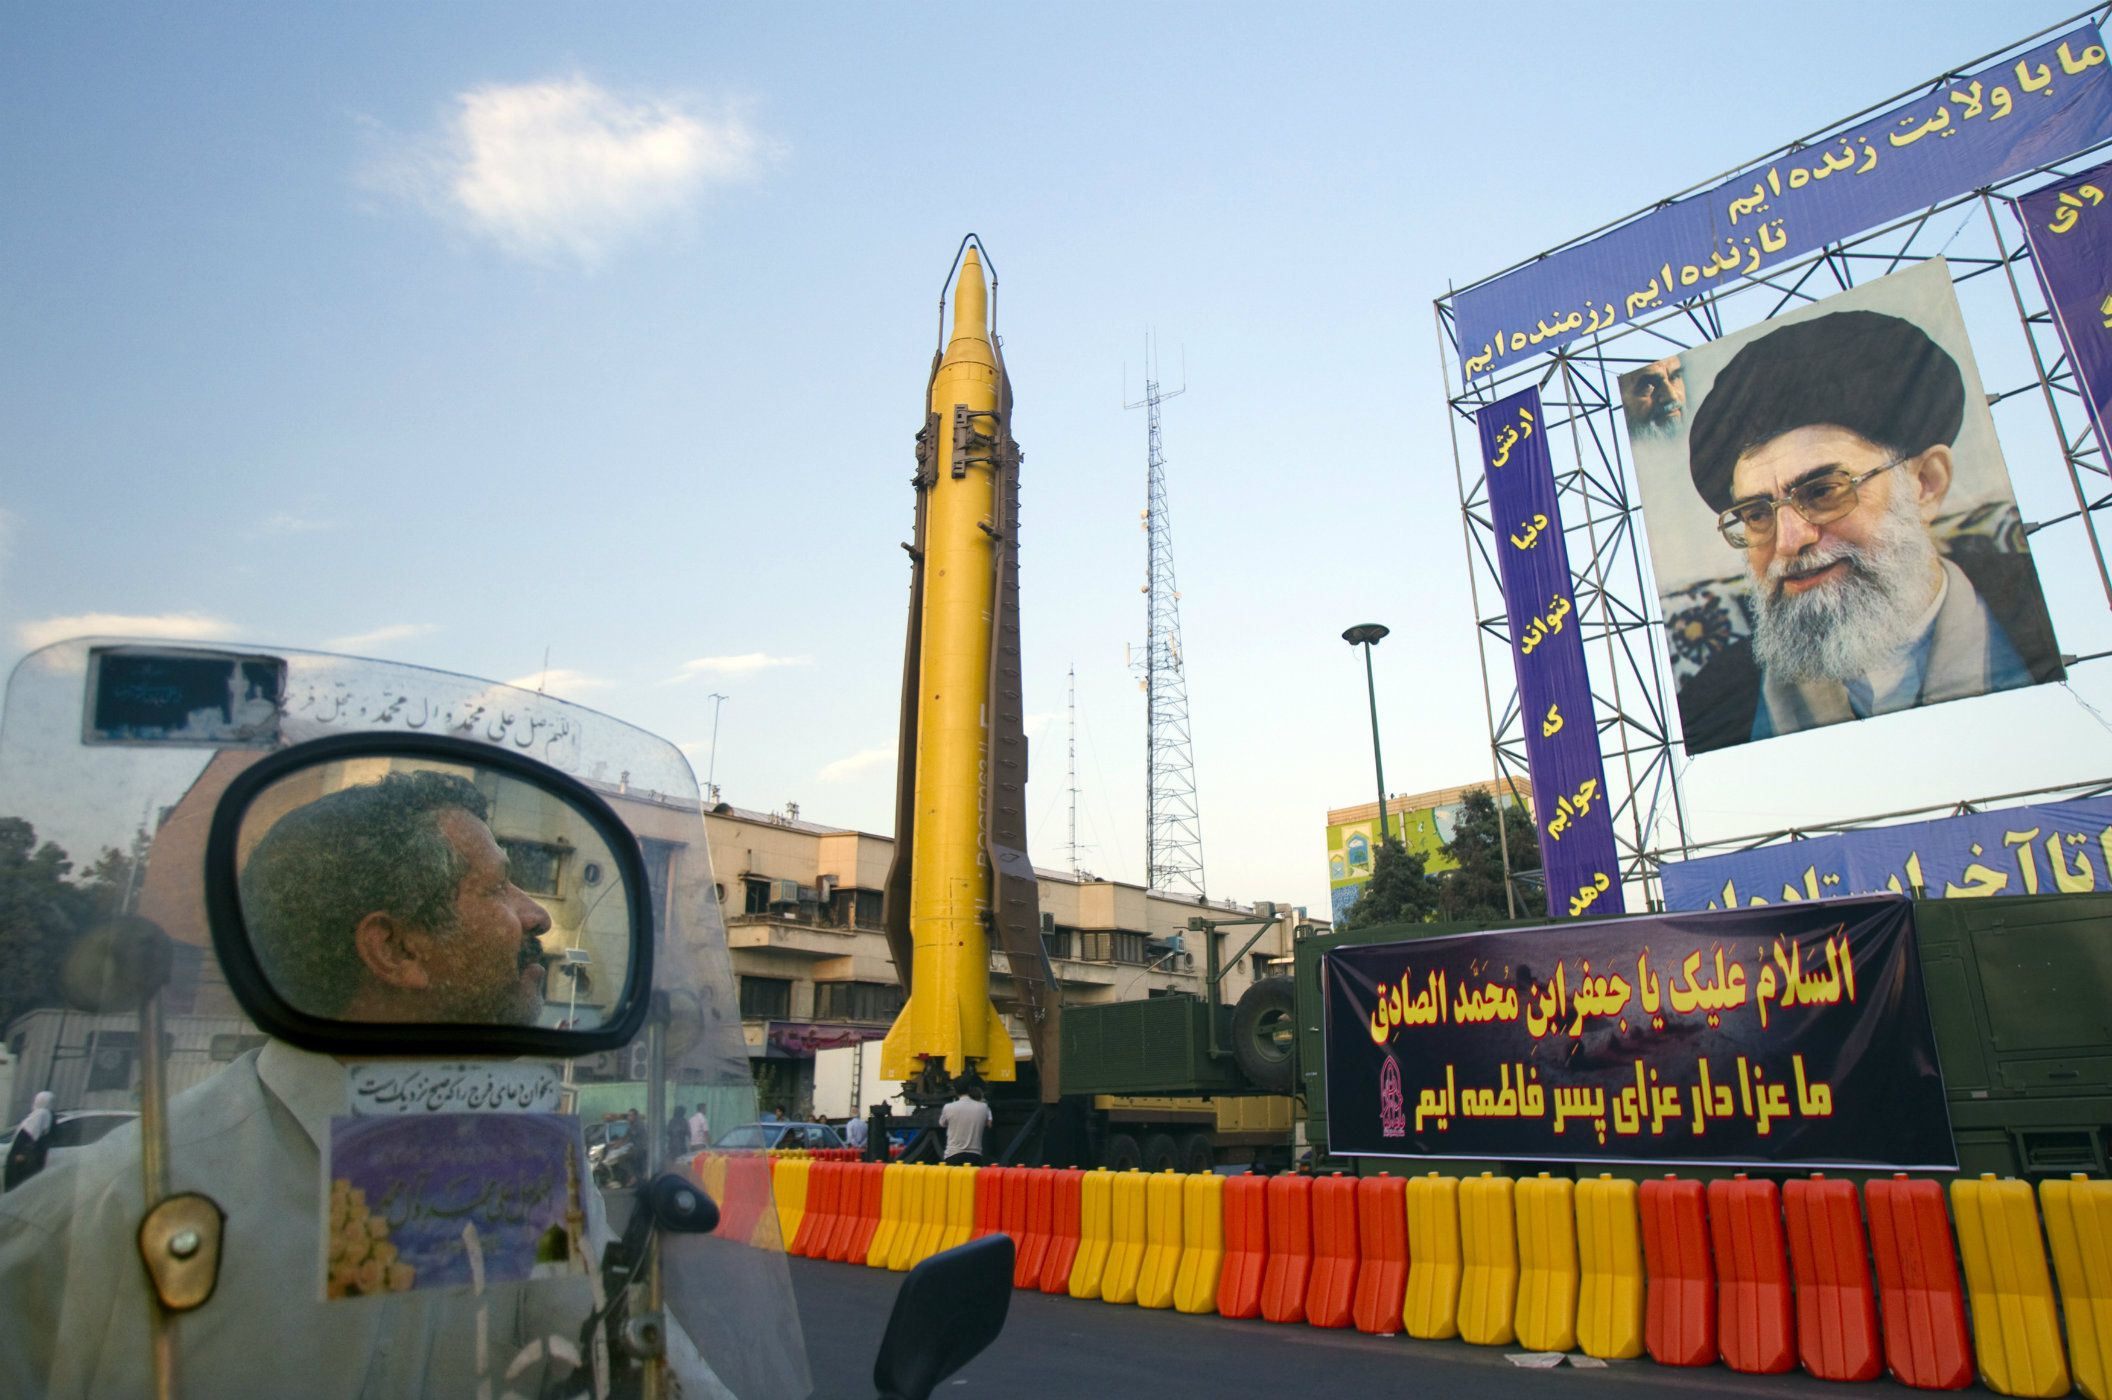 "A motorcyclist looks at an Iranian-made Ghadr-F missile during a war exhibition held by Iran's revolutionary guard to mark the anniversary of the Iran-Iraq war (1980-88), also known in Iran as the ""Holy Defence"", at Baharestan square near the Iranian Parliament in southern Tehran September 23, 2011. A portrait of Iran's Supreme Leader Ayatollah Ali Khamenei is seen on right. REUTERS/Morteza Nikoubazl"